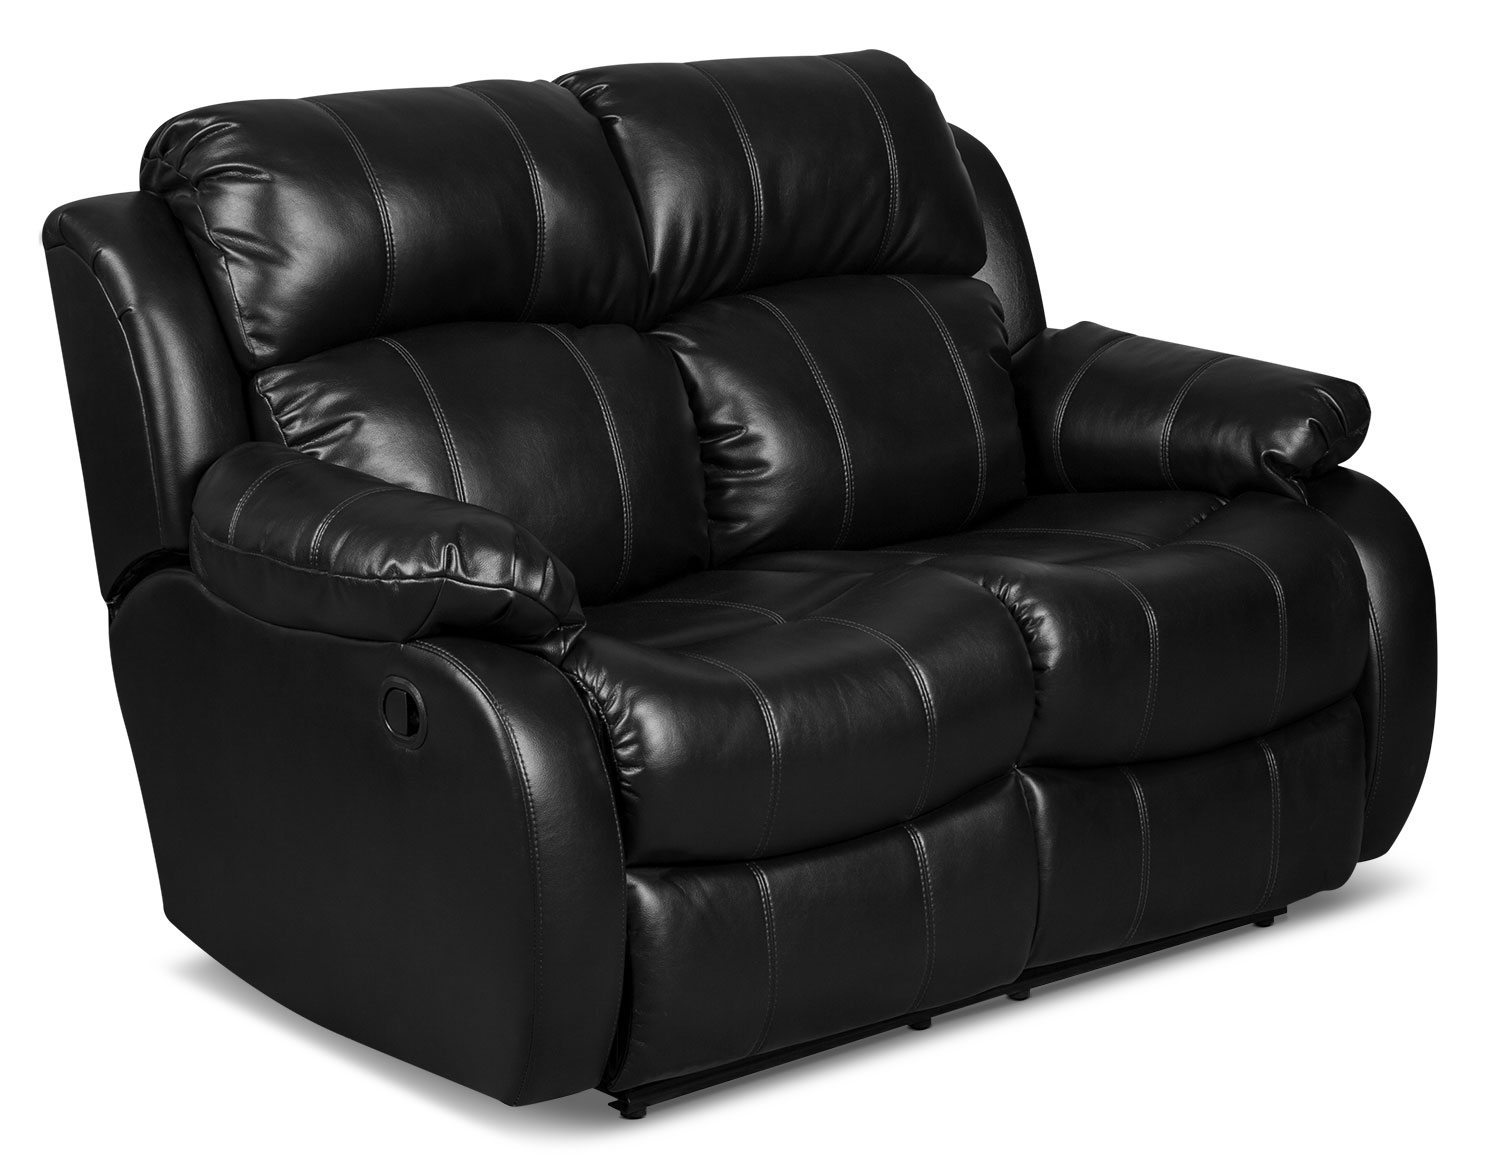 Omega 3 Leather Look Fabric Reclining Loveseat Black The Brick